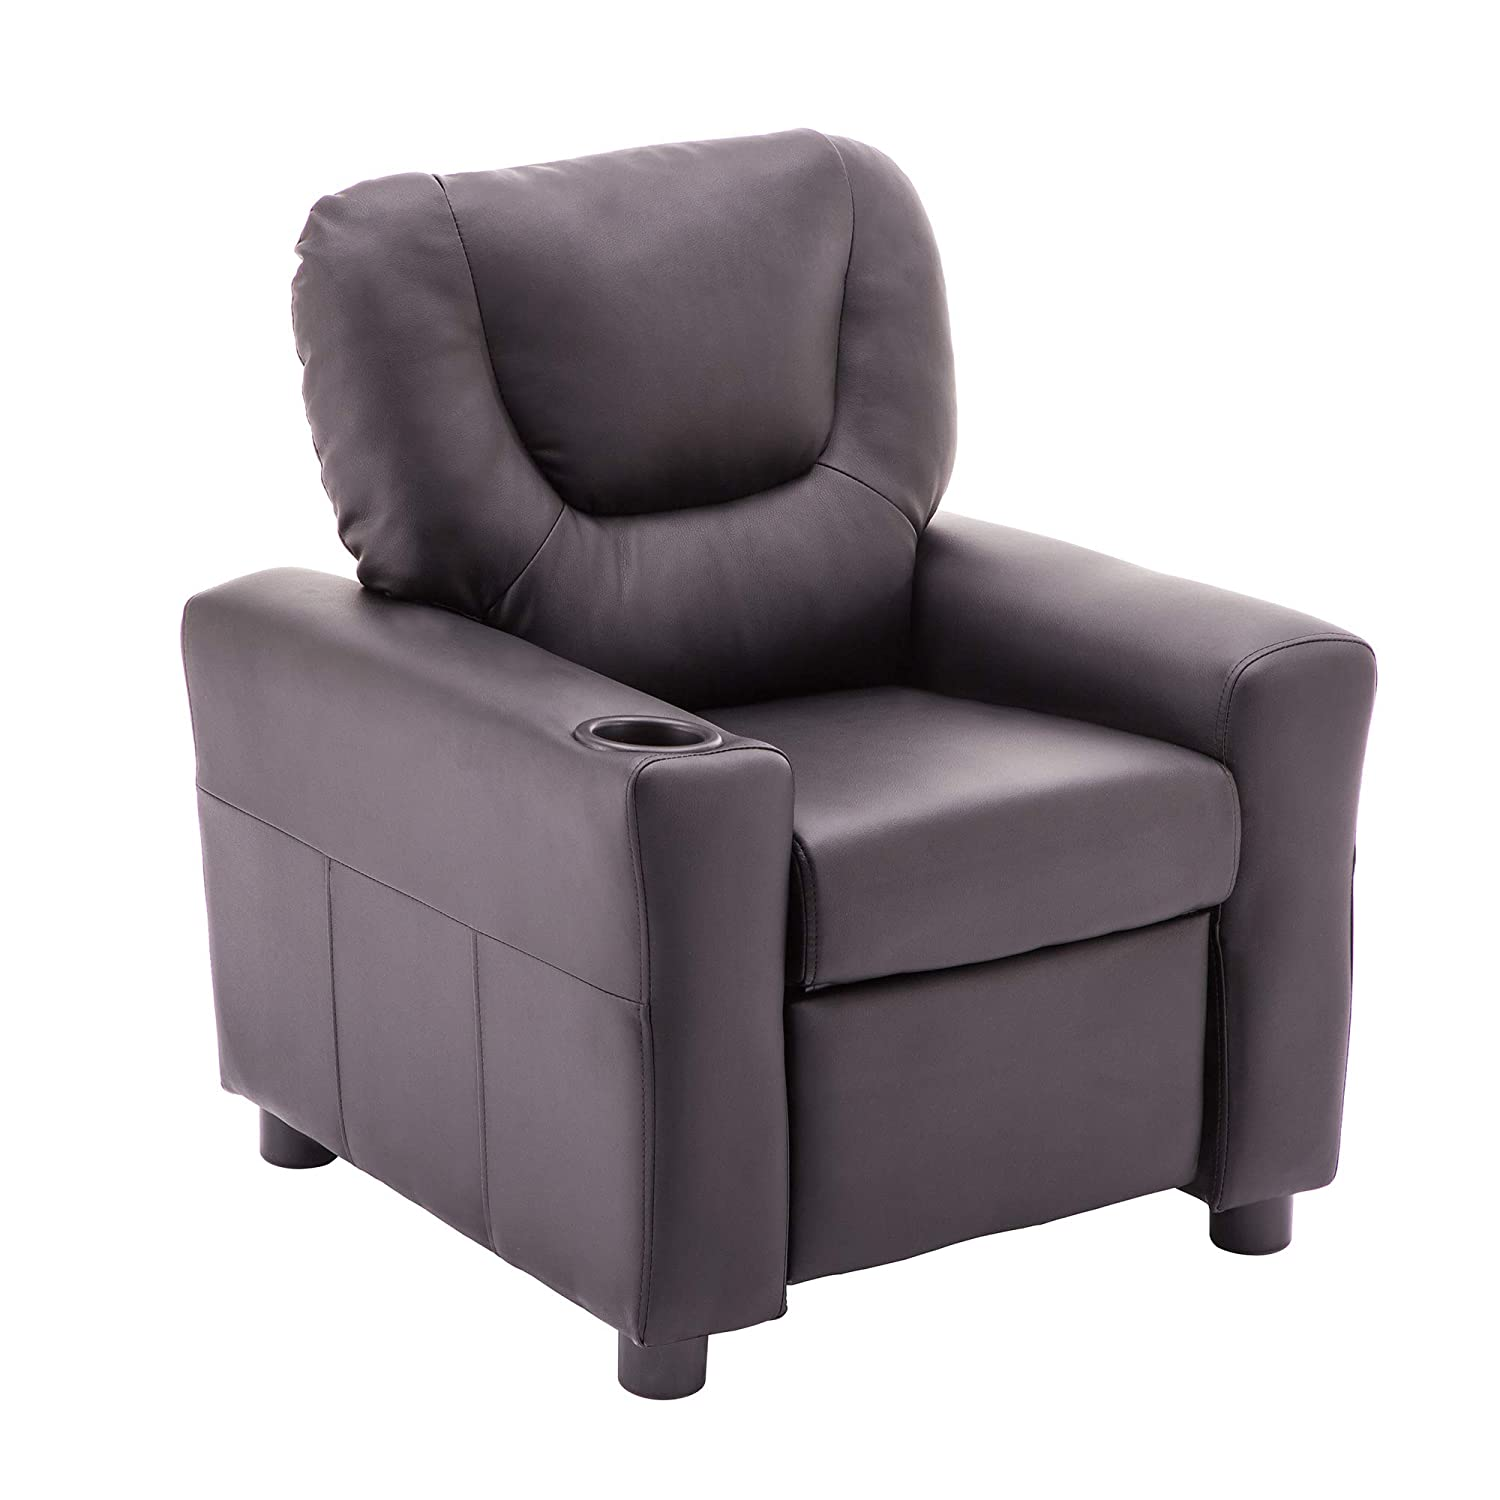 MCombo Kids Recliner Armchair Children's Furniture Sofa Seat Couch Chair w/Cup Holder